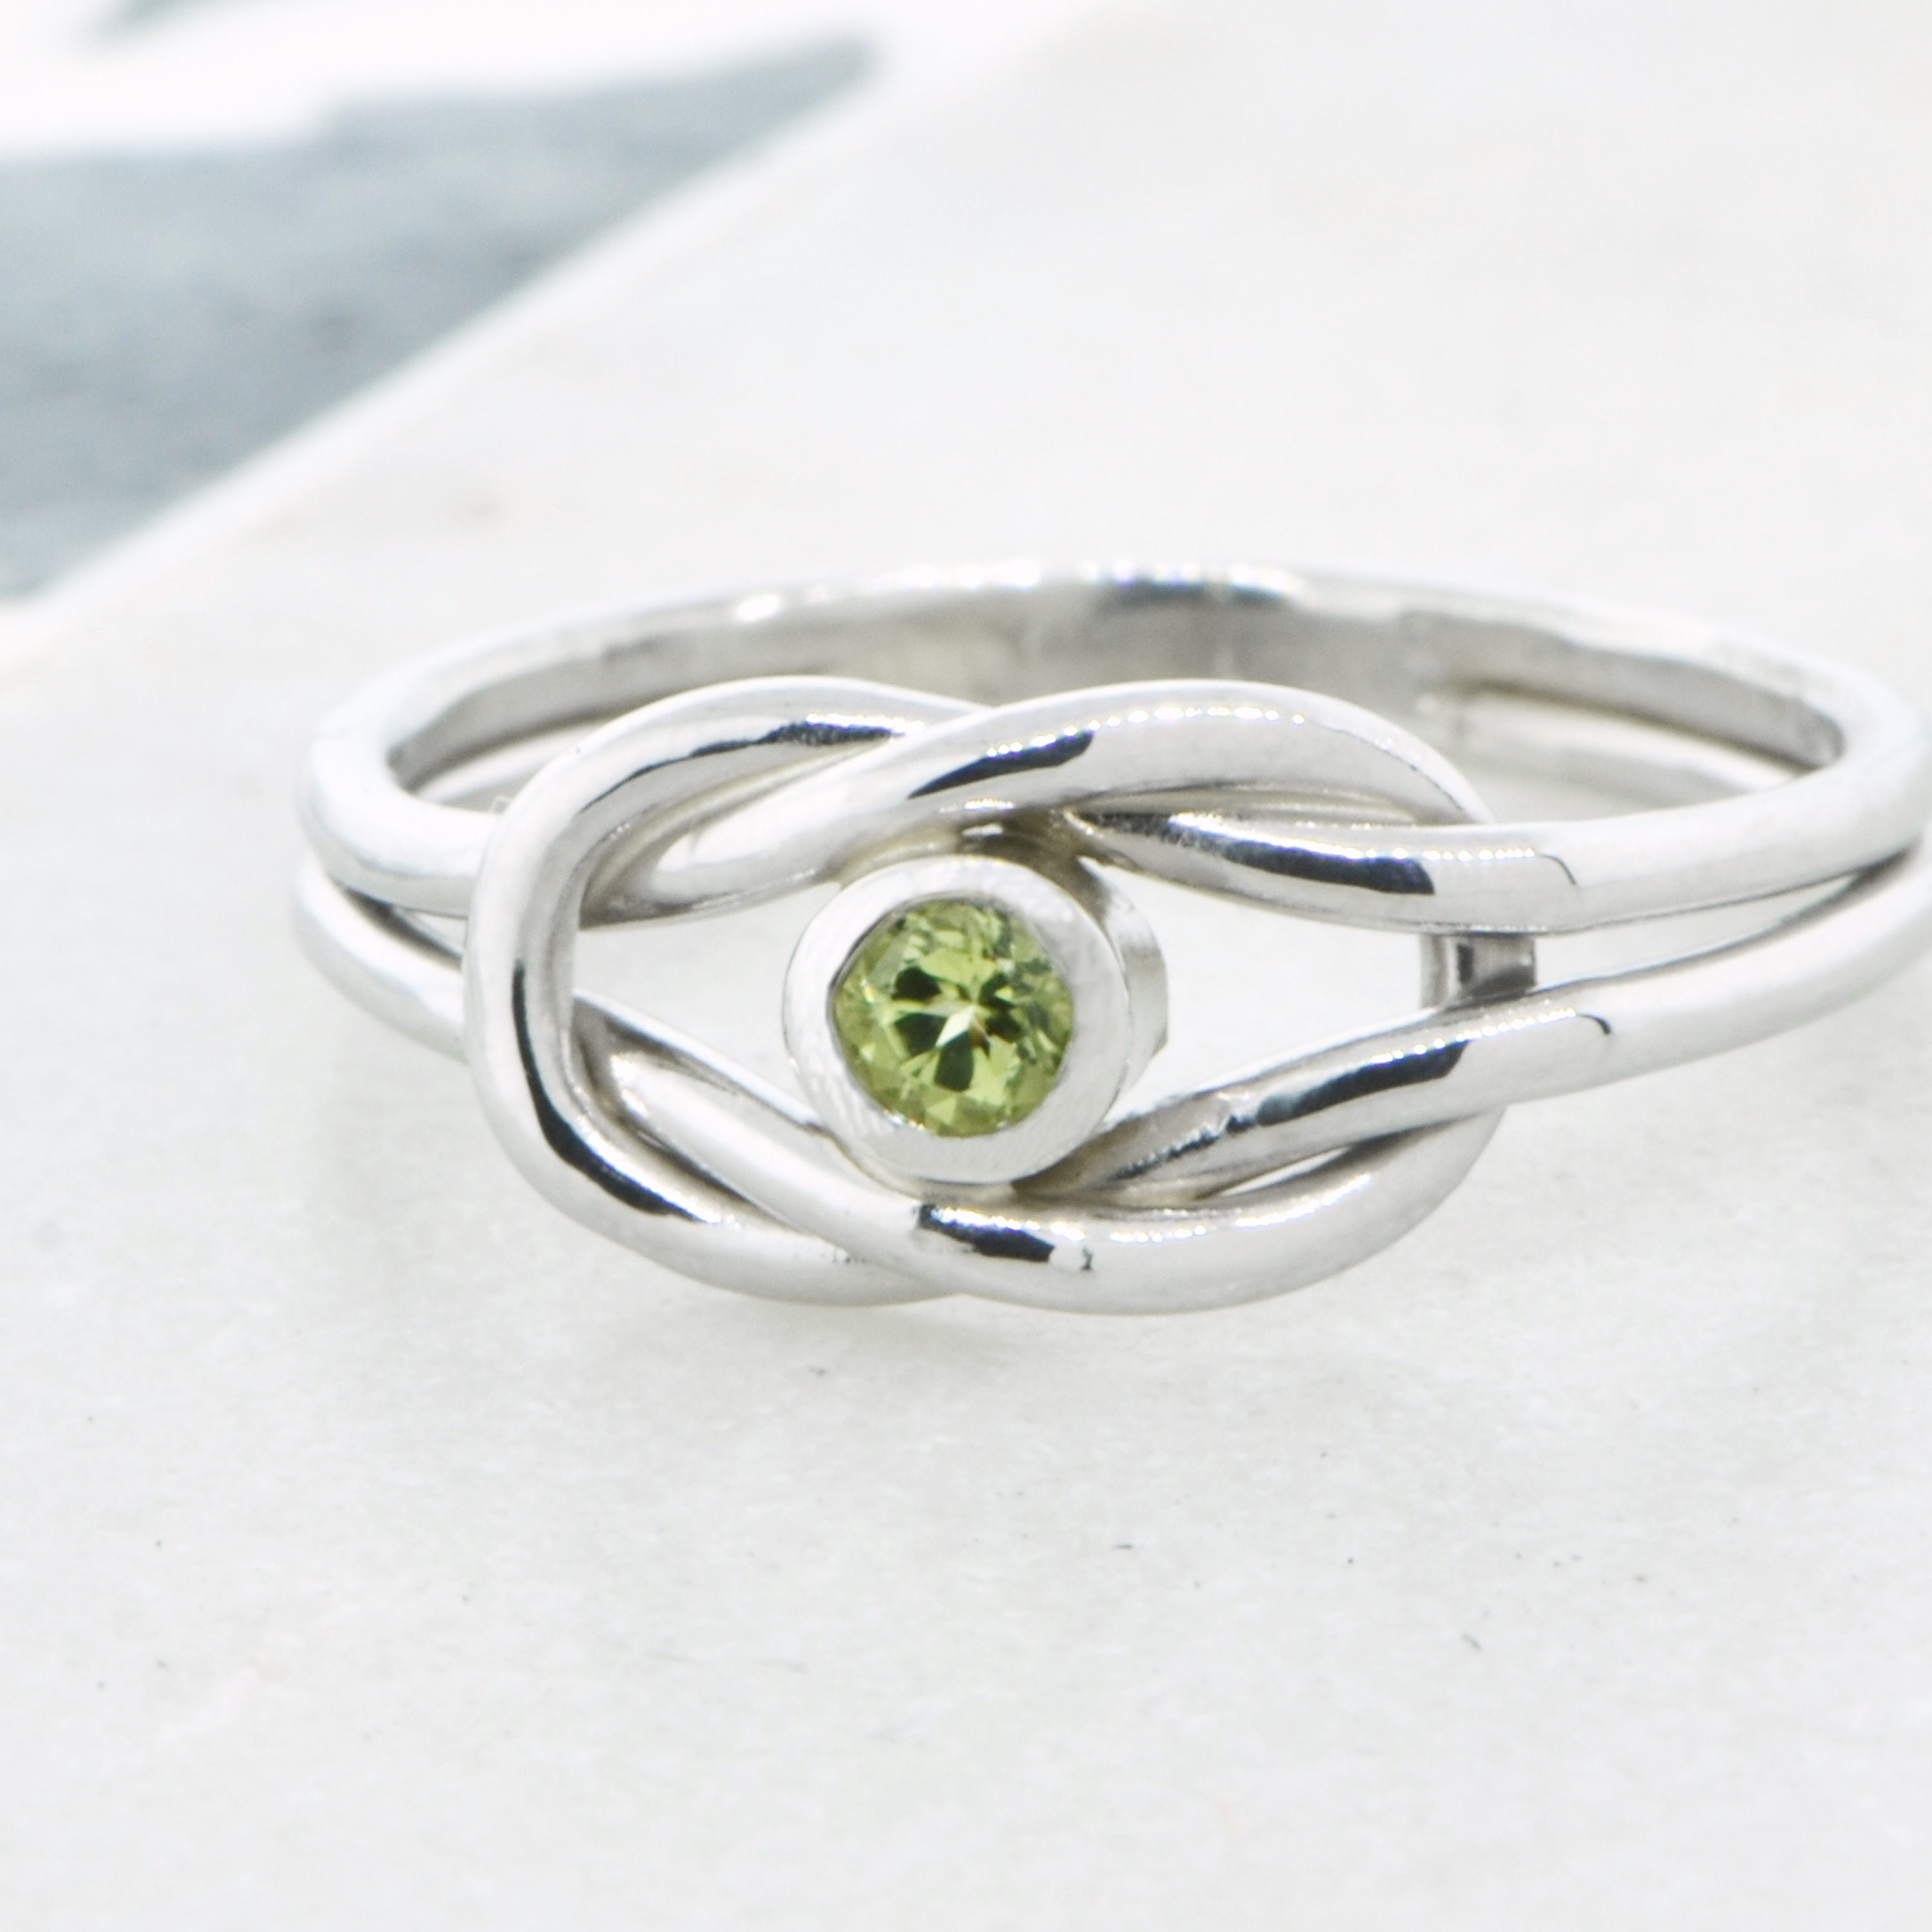 her symbolic she of with mothers beautiful deep amazing ring in pin wears to birthstone has white gold love most as stone diamonds close the this for is remind bypass infinity children gifts